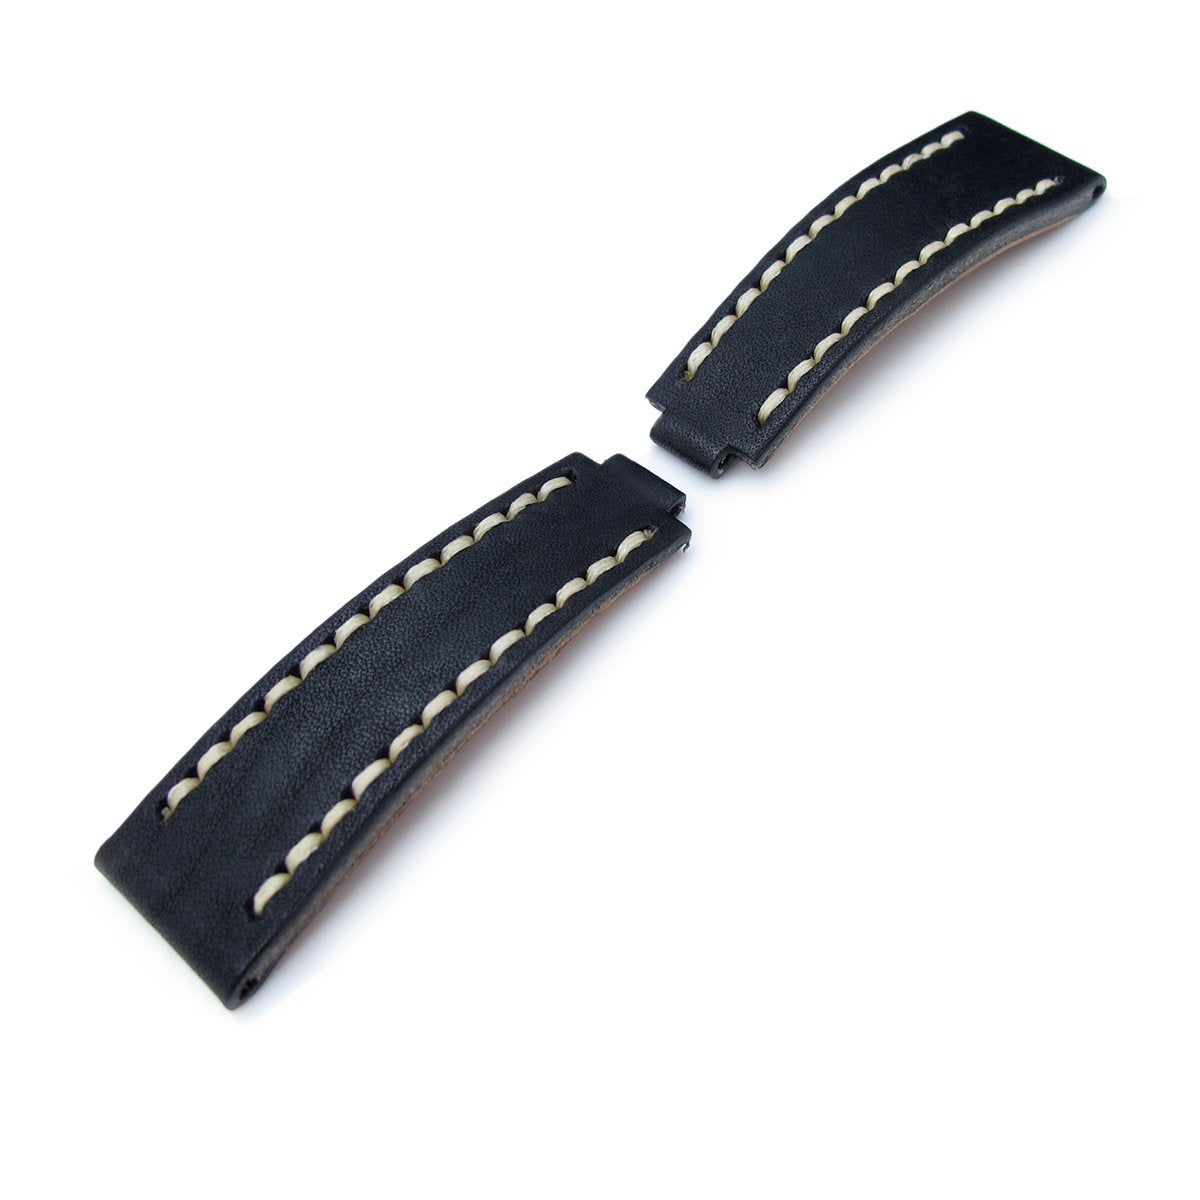 20mm MiLTAT RX Collection Watch Strap NERO Black Genuine Calf Beige St. Tailor-made for RX SUB & EXP Strapcode Watch Bands